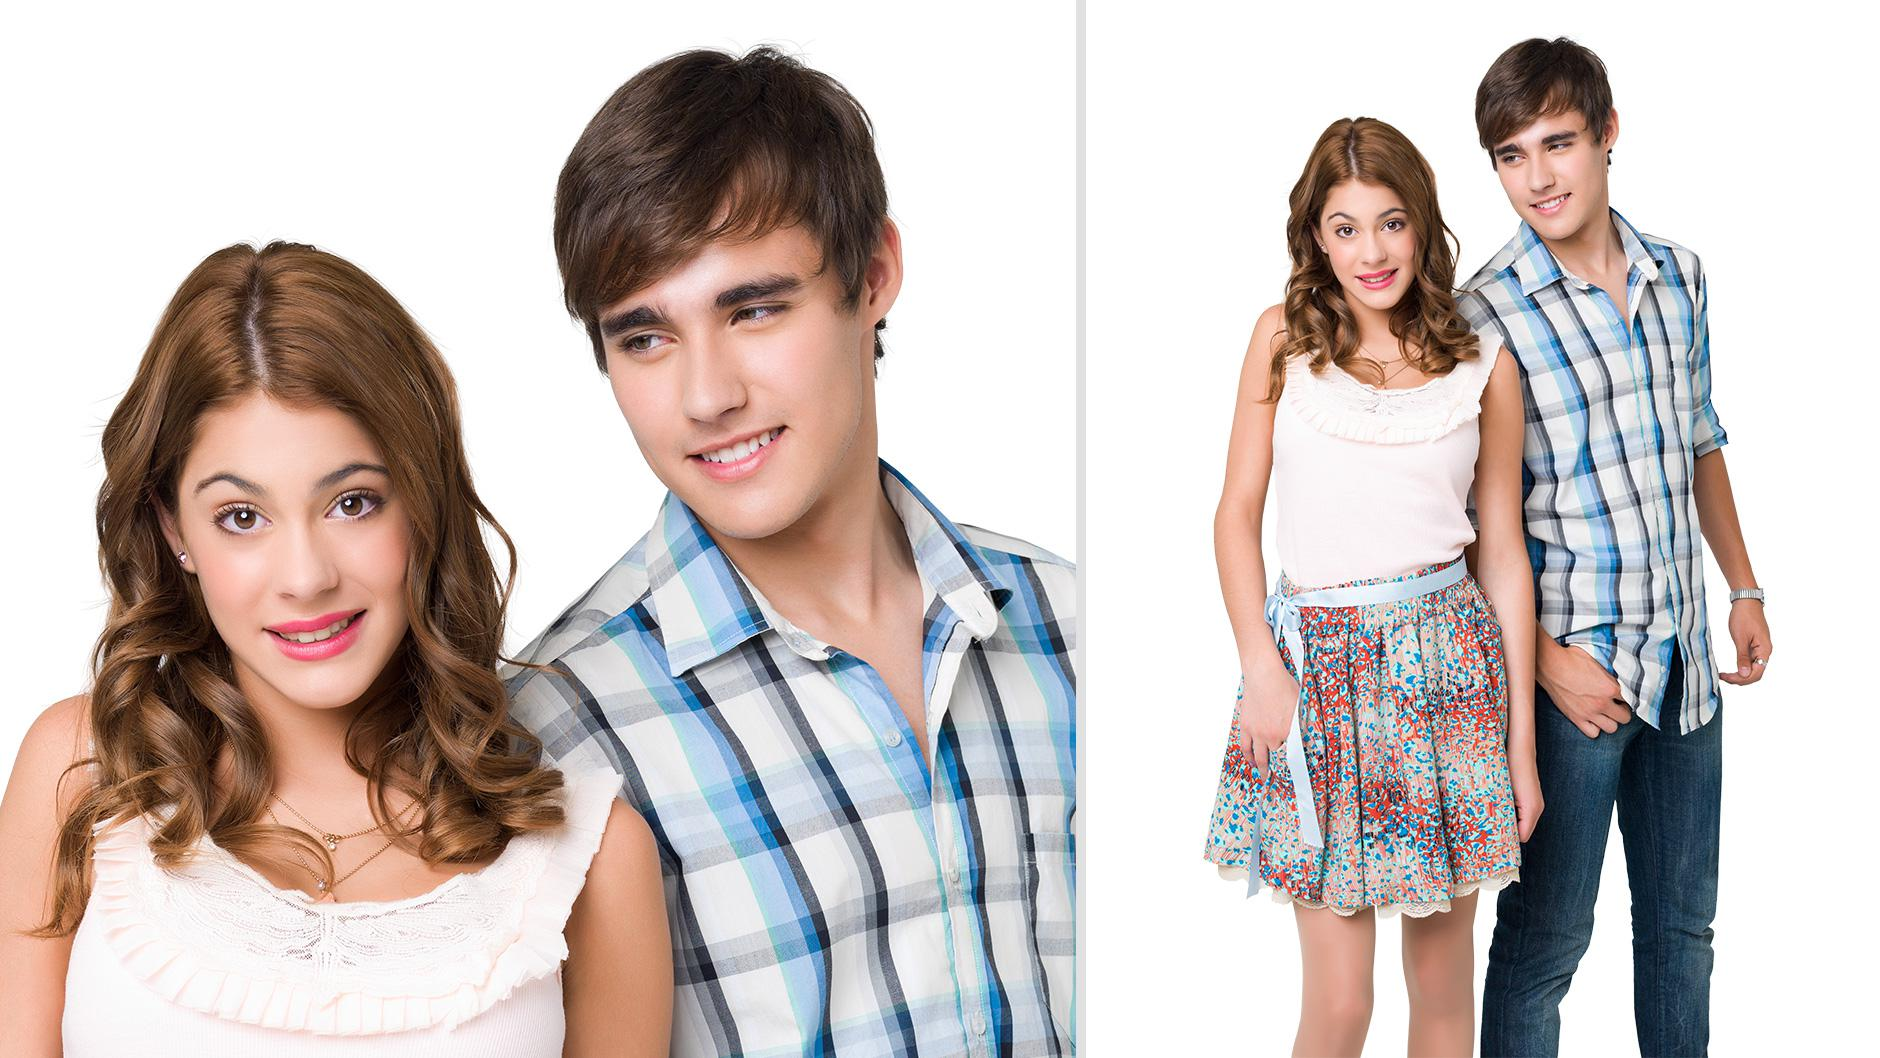 Leonetta gallery violetta wiki fandom powered by wikia - Photo de leon de violetta ...